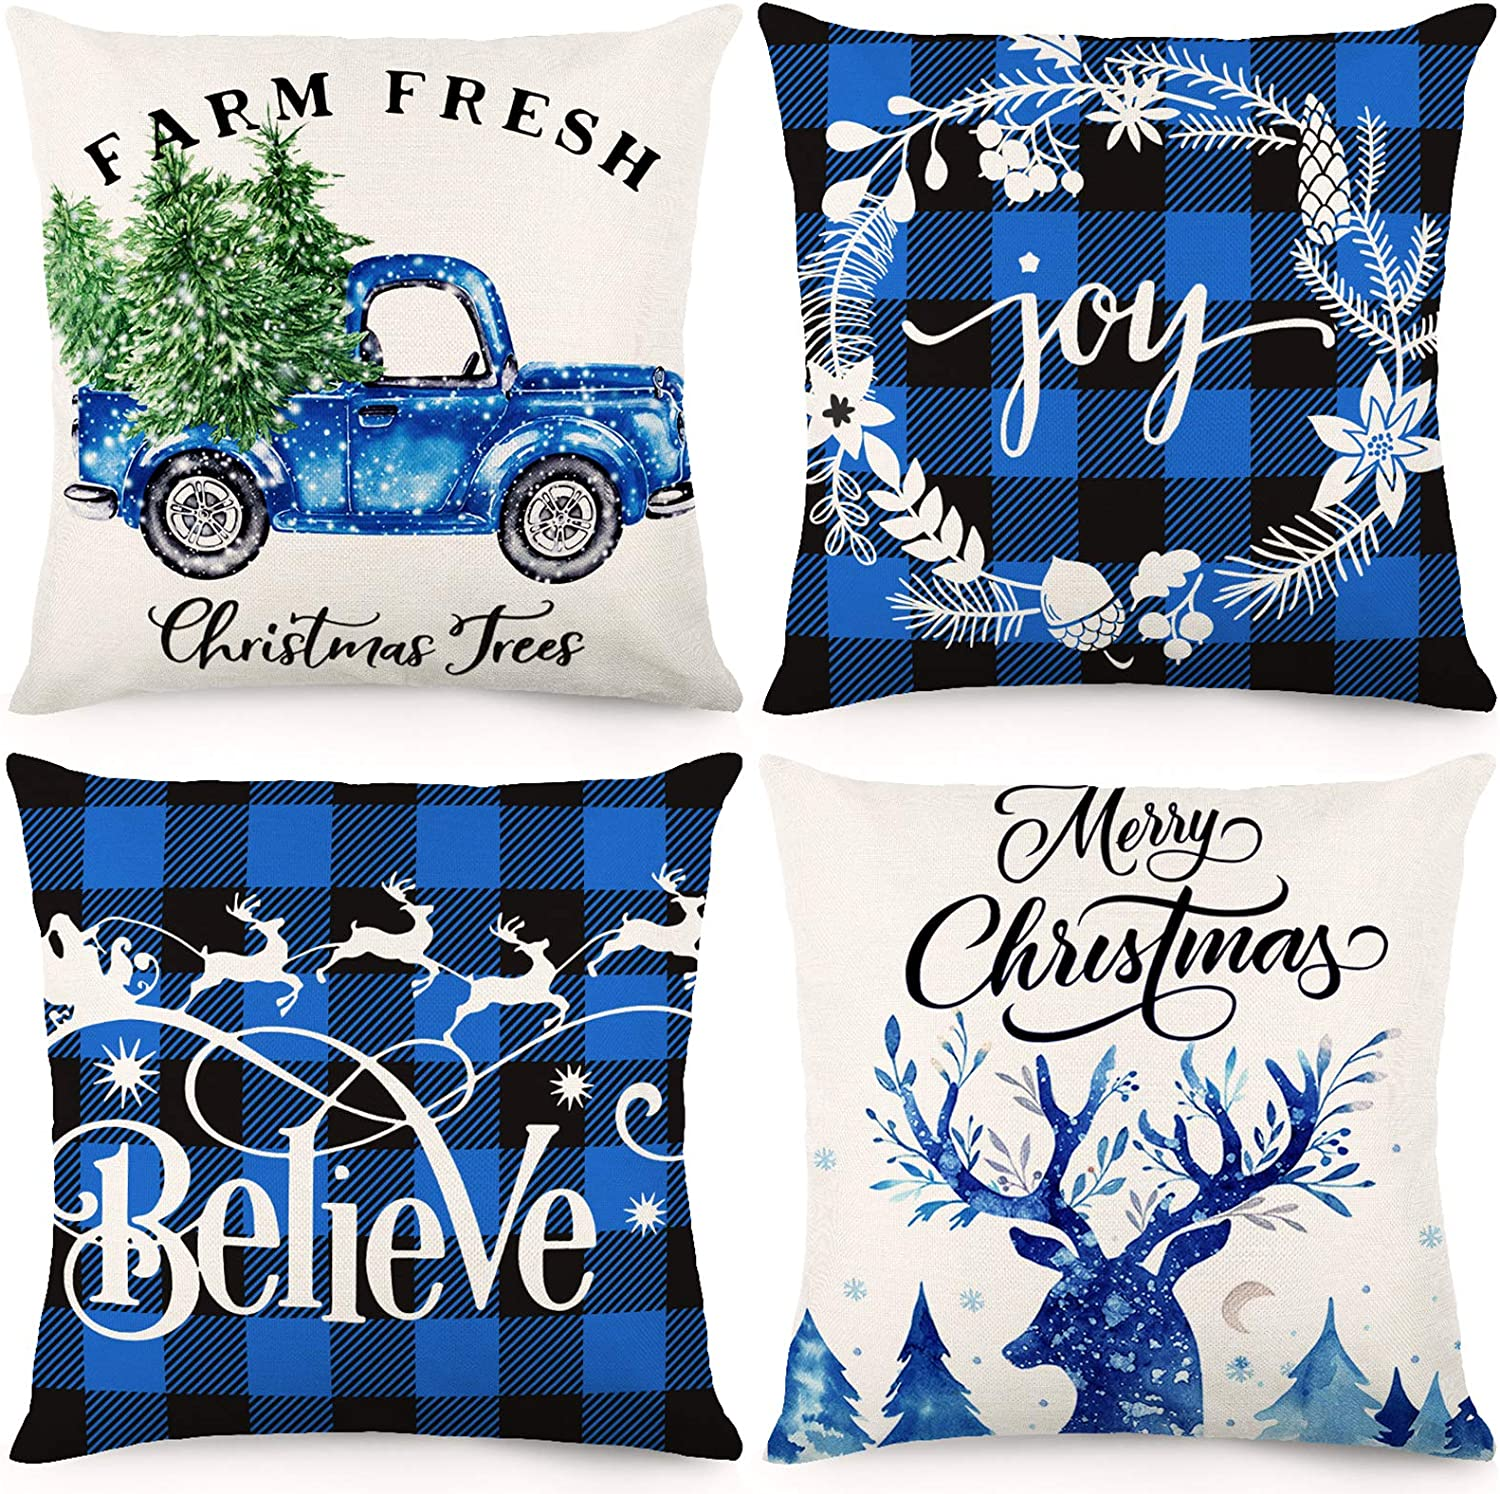 CDWERD Christmas Pillow Covers 18x18Inches Christmas Decorations Black and Blue Buffalo Check Plaid Throw Pillowcase Winter Holiday Cotton Linen Cushion Case for Home Decor Set of 4